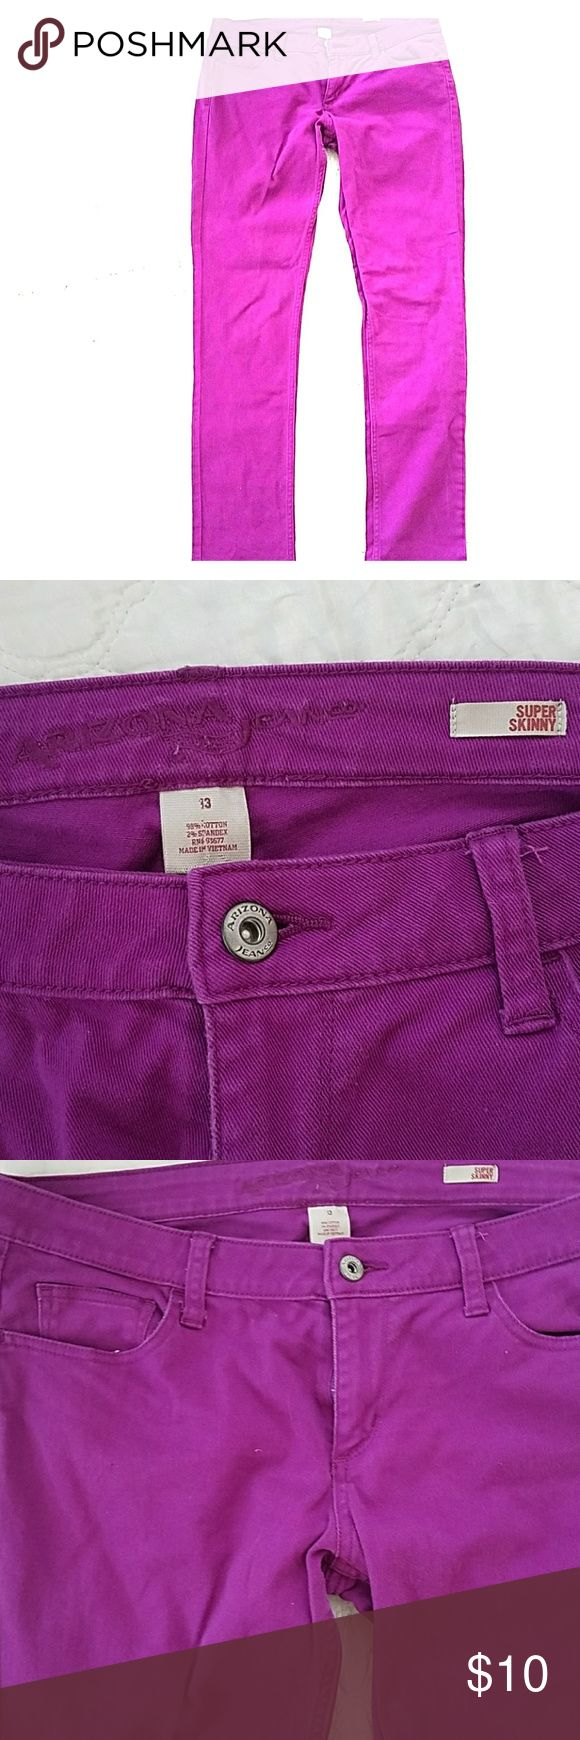 Purple skinny jeans These jeans are so cute and stand-out! Have fun! Perfect condition. Arizona Jean Company Jeans Skinny